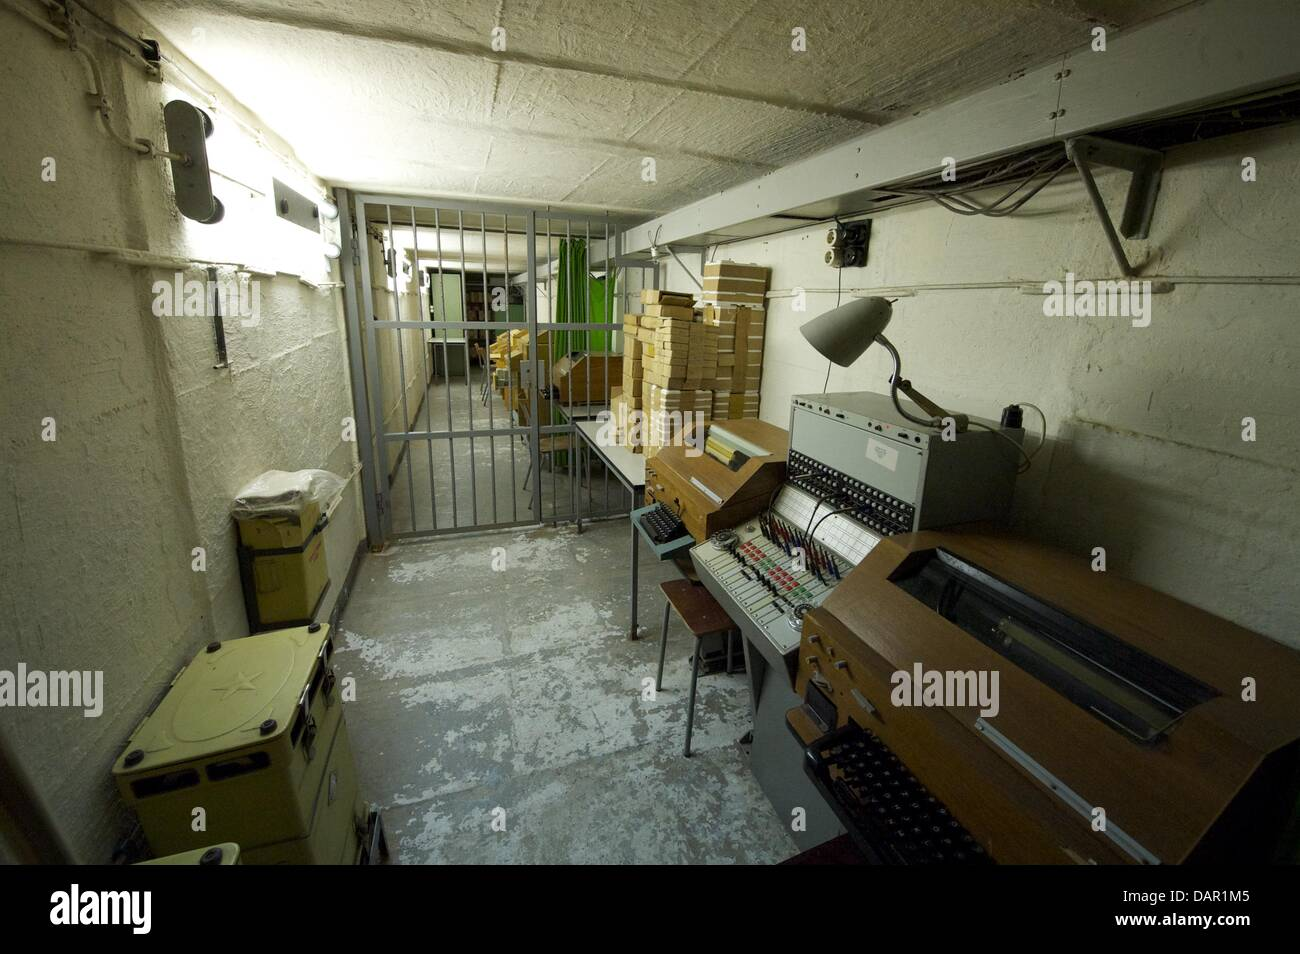 The cypher room of the Stasi bunker in Machern, Germany